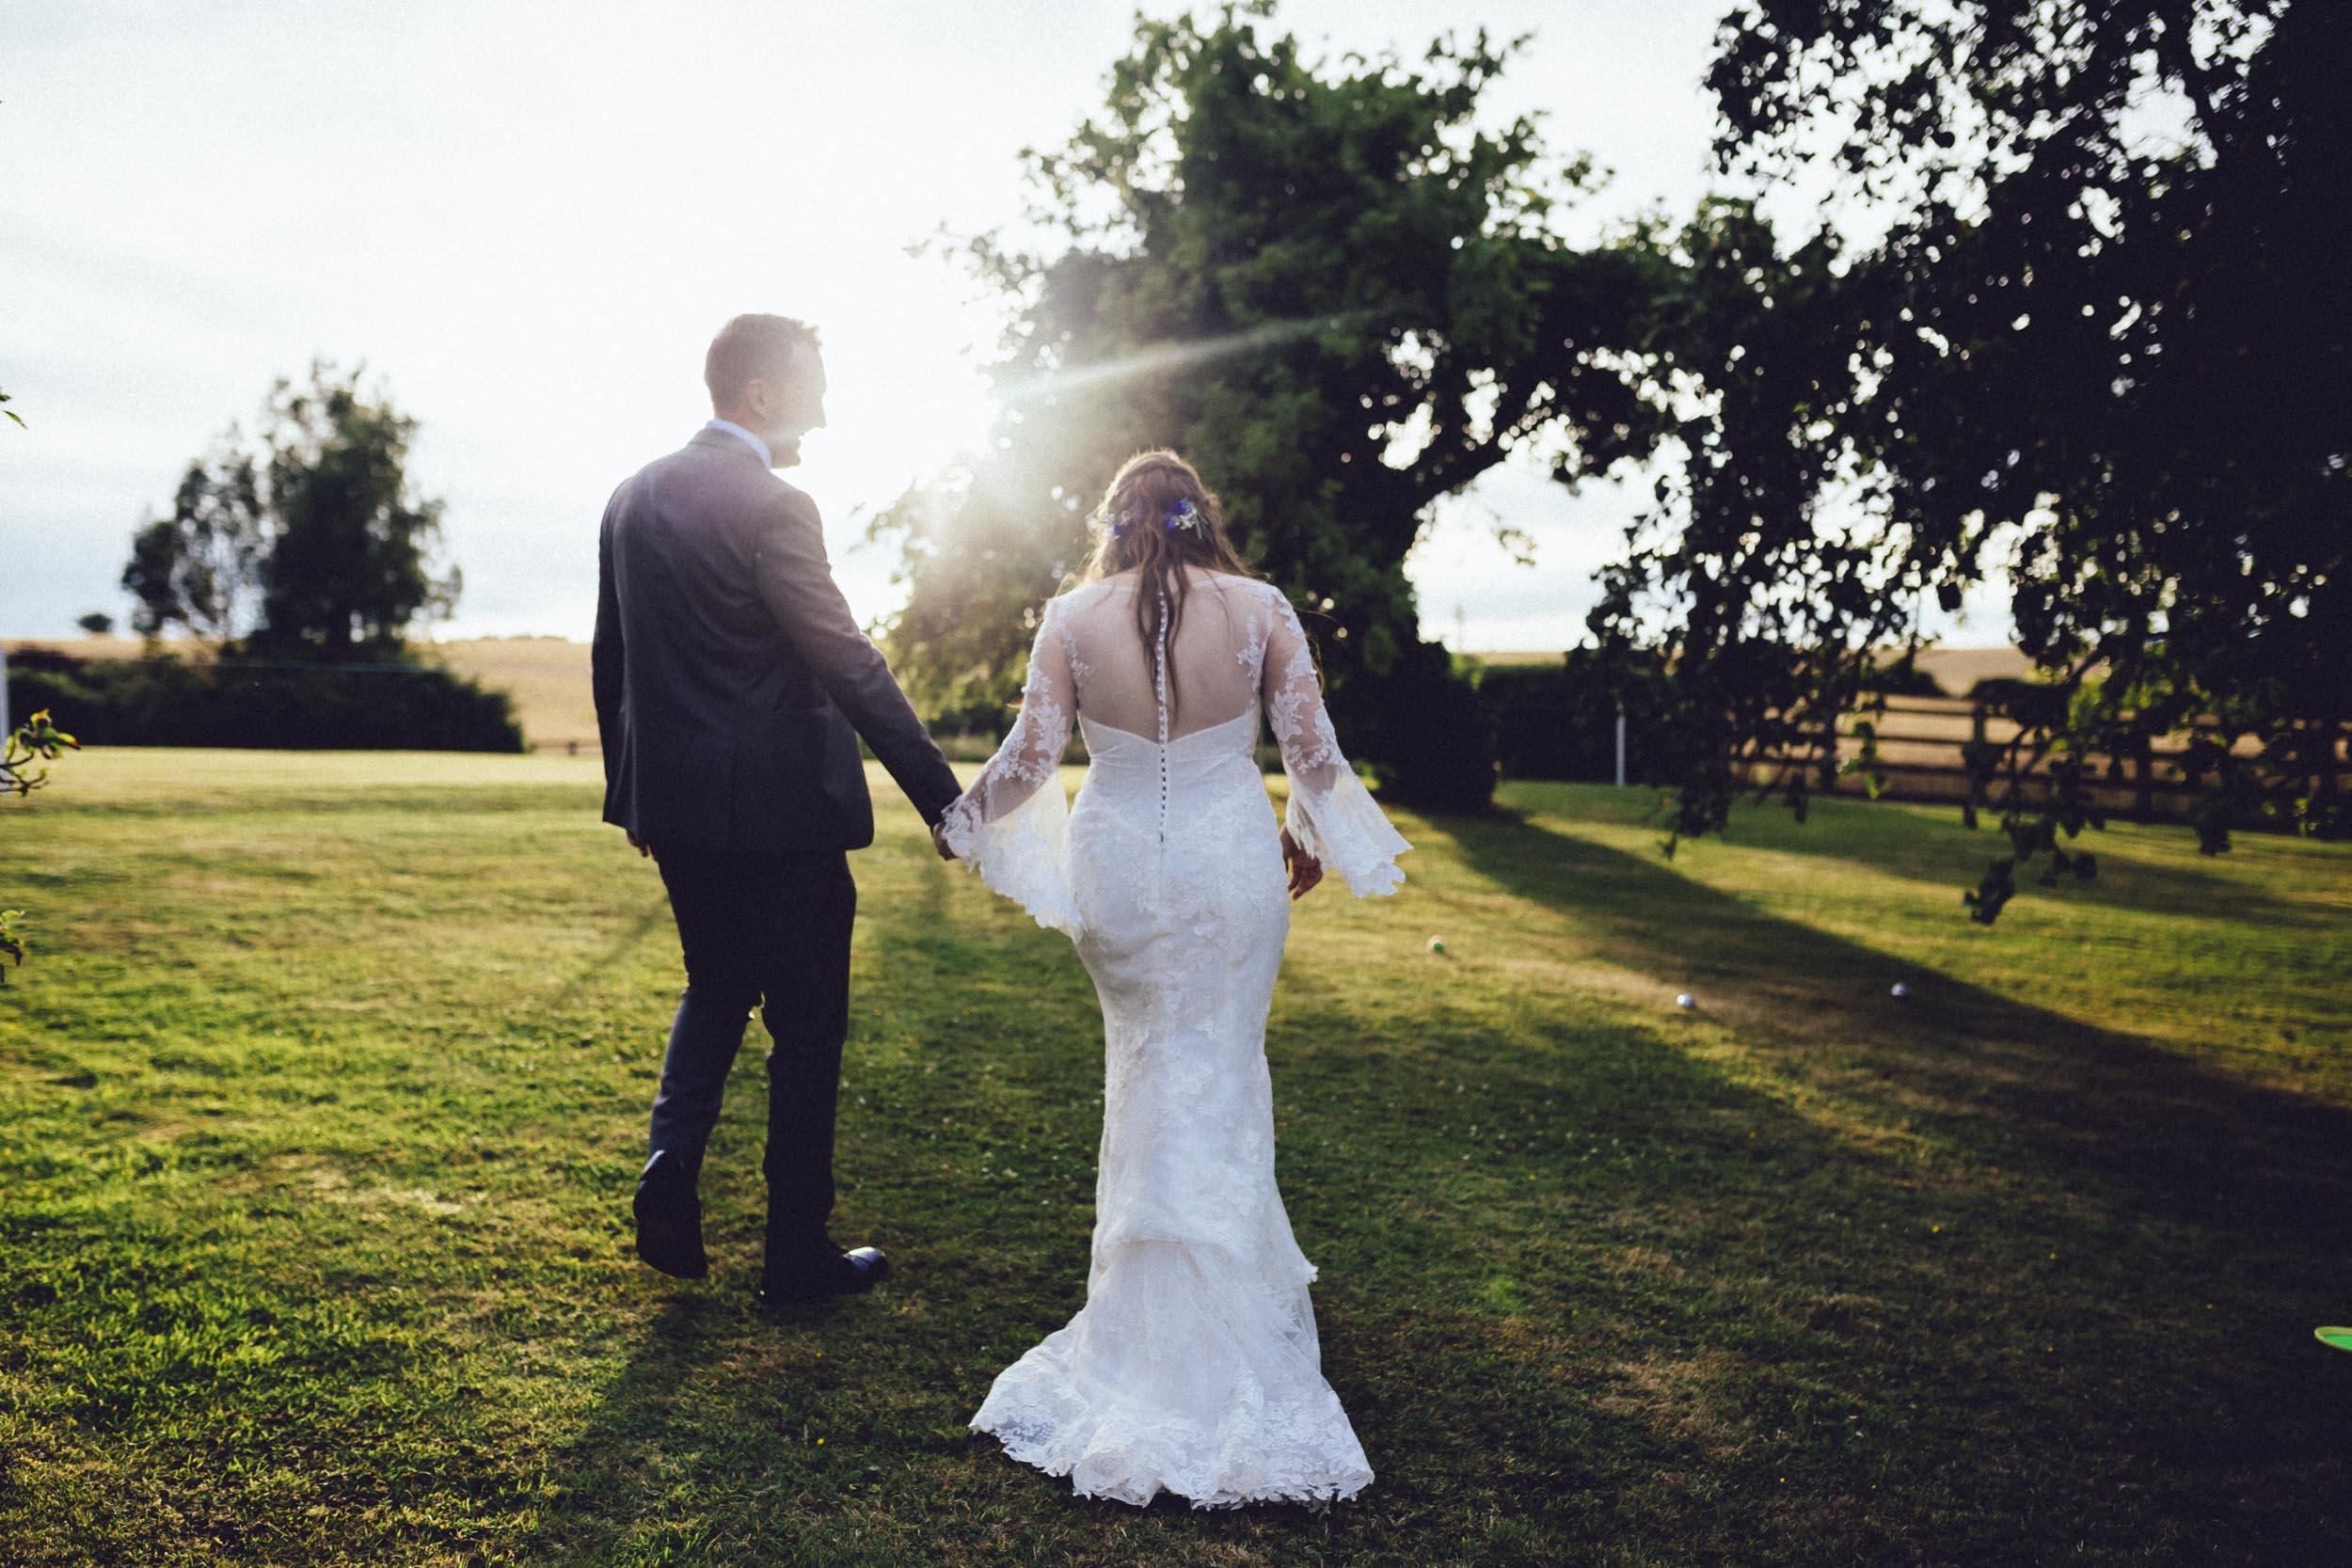 33Curious Rose Wedding Photography- Laura Rhodes- Newton Park Farm- Birmingham Artistic wedding photography-bride and groom- golden light.jpg